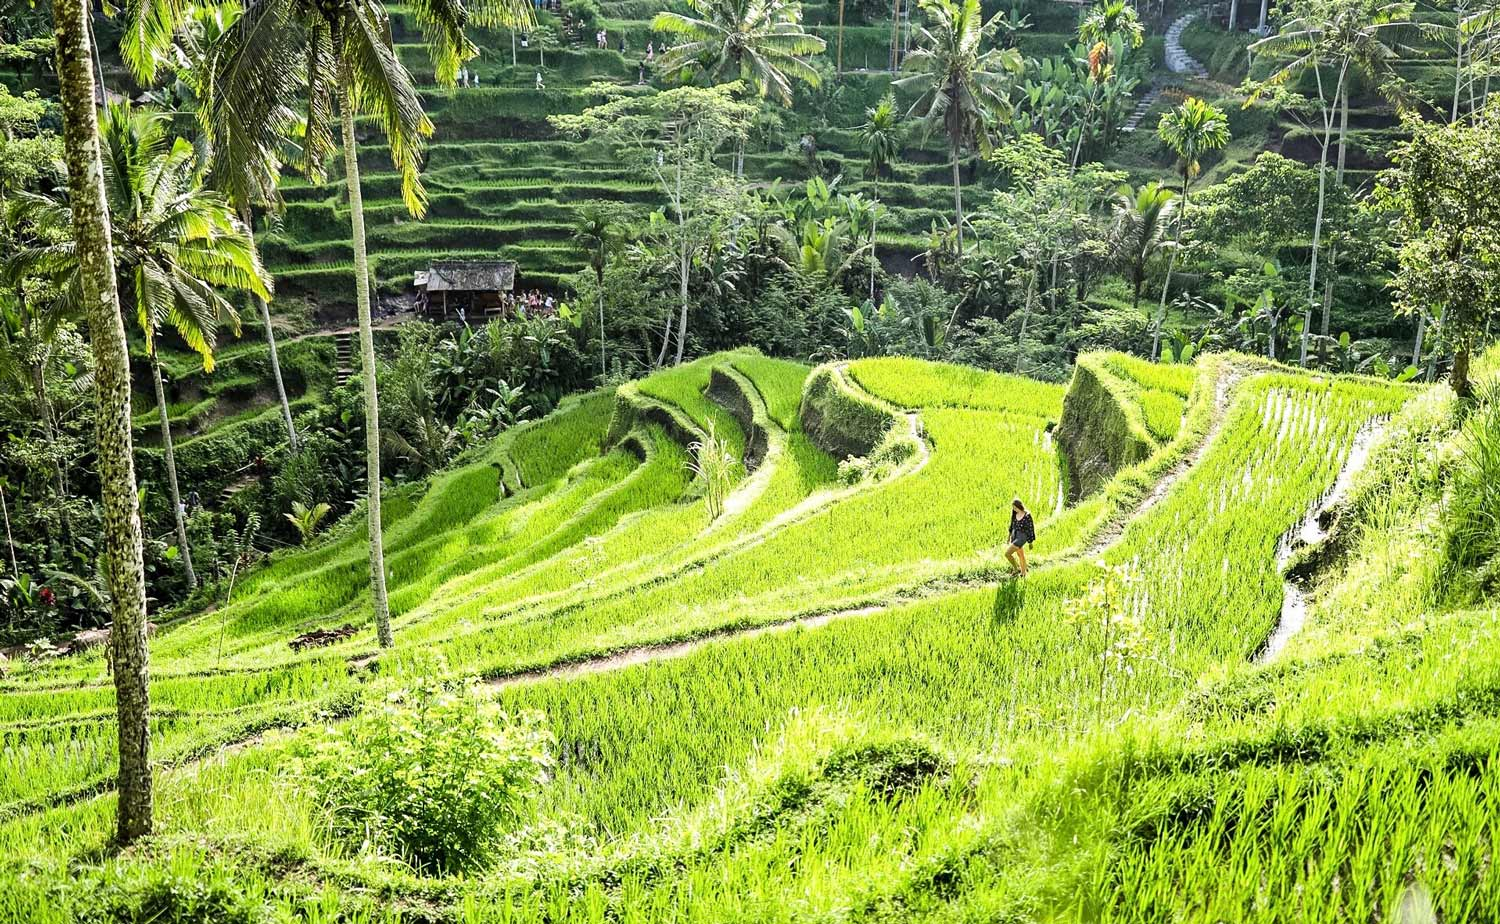 Woman walking through rice field in Bali, Indonesia | Tegalalang Rice Fields | Travel Photography